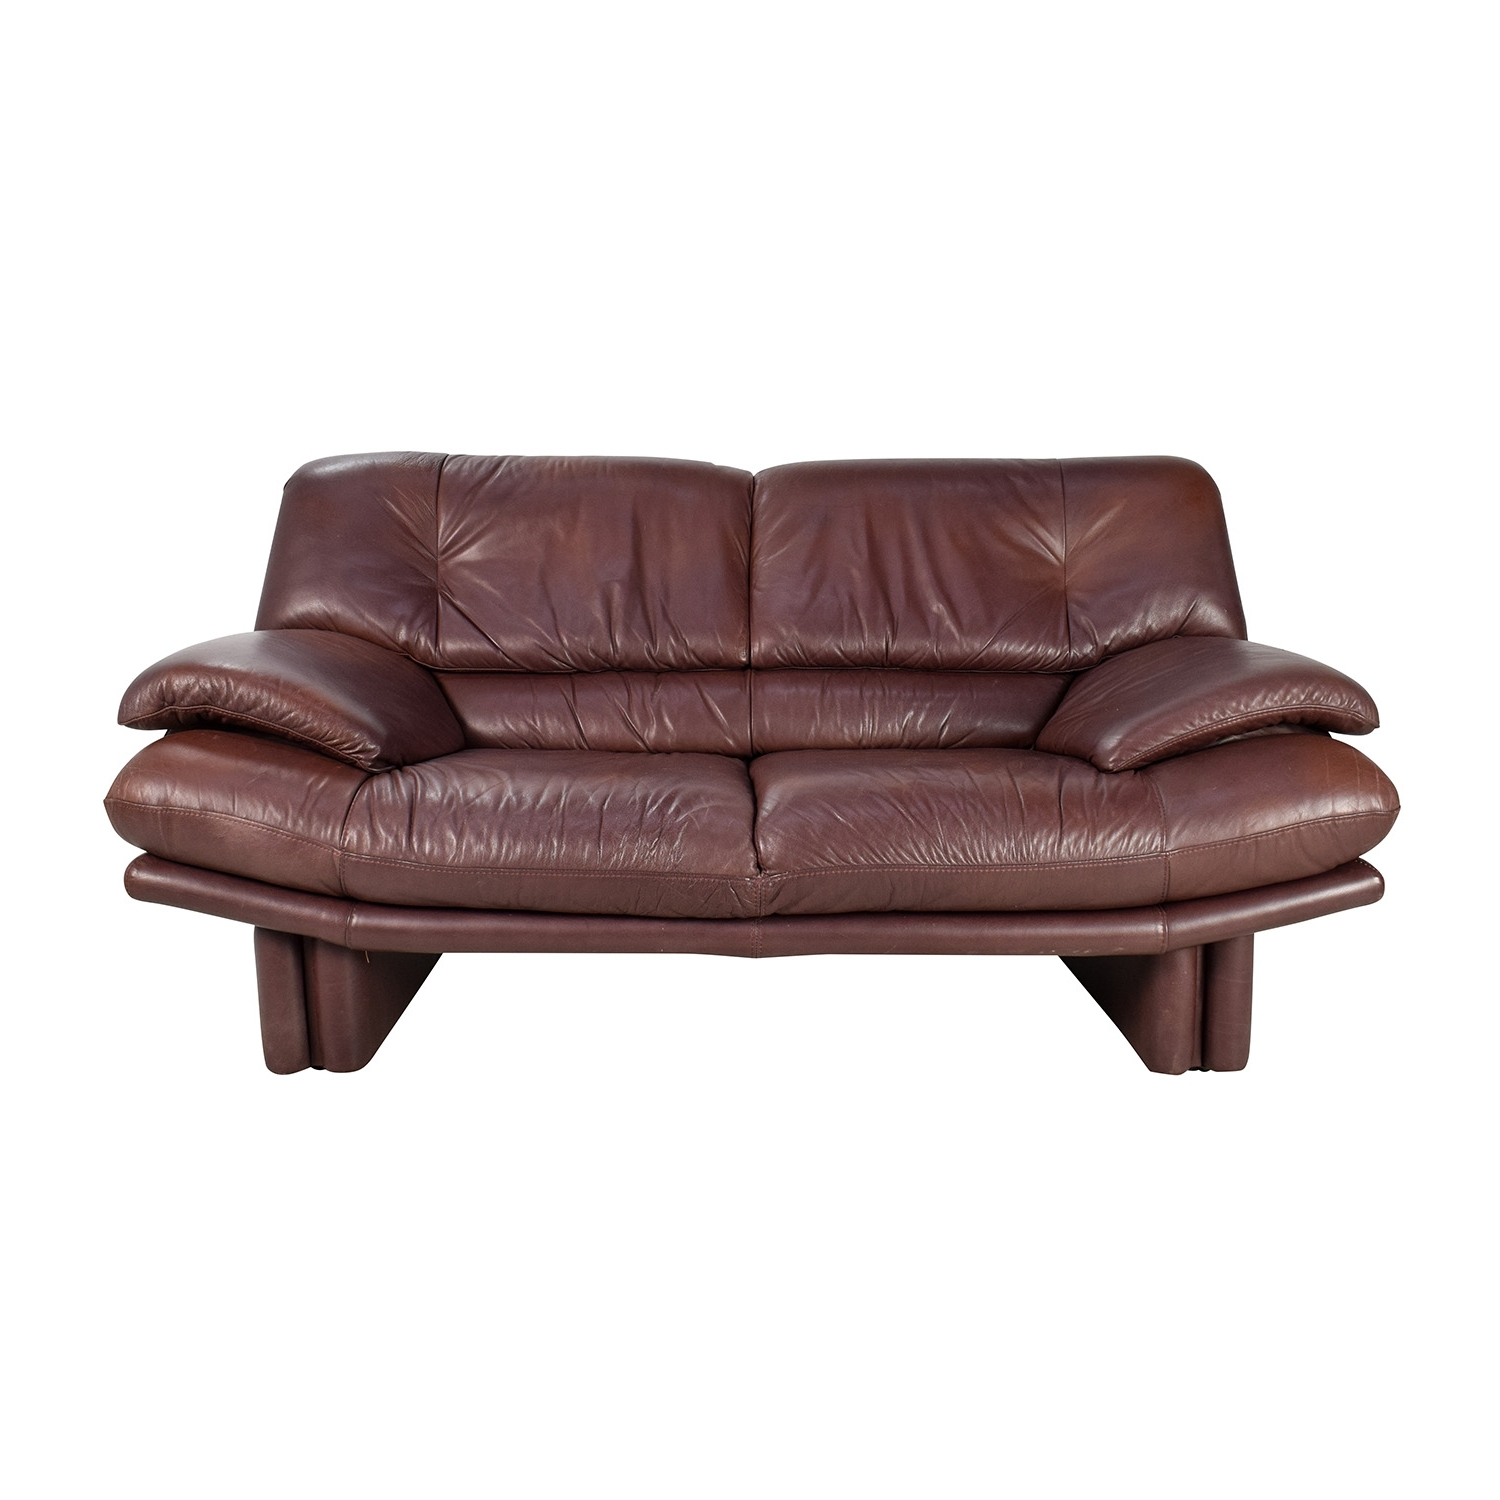 [%67% Off – Maurice Villency Maurice Villency Brown Leather Sofa / Sofas Intended For Popular Canterbury Leather Sofas|Canterbury Leather Sofas Intended For 2018 67% Off – Maurice Villency Maurice Villency Brown Leather Sofa / Sofas|Latest Canterbury Leather Sofas Throughout 67% Off – Maurice Villency Maurice Villency Brown Leather Sofa / Sofas|Well Liked 67% Off – Maurice Villency Maurice Villency Brown Leather Sofa / Sofas Within Canterbury Leather Sofas%] (View 9 of 20)